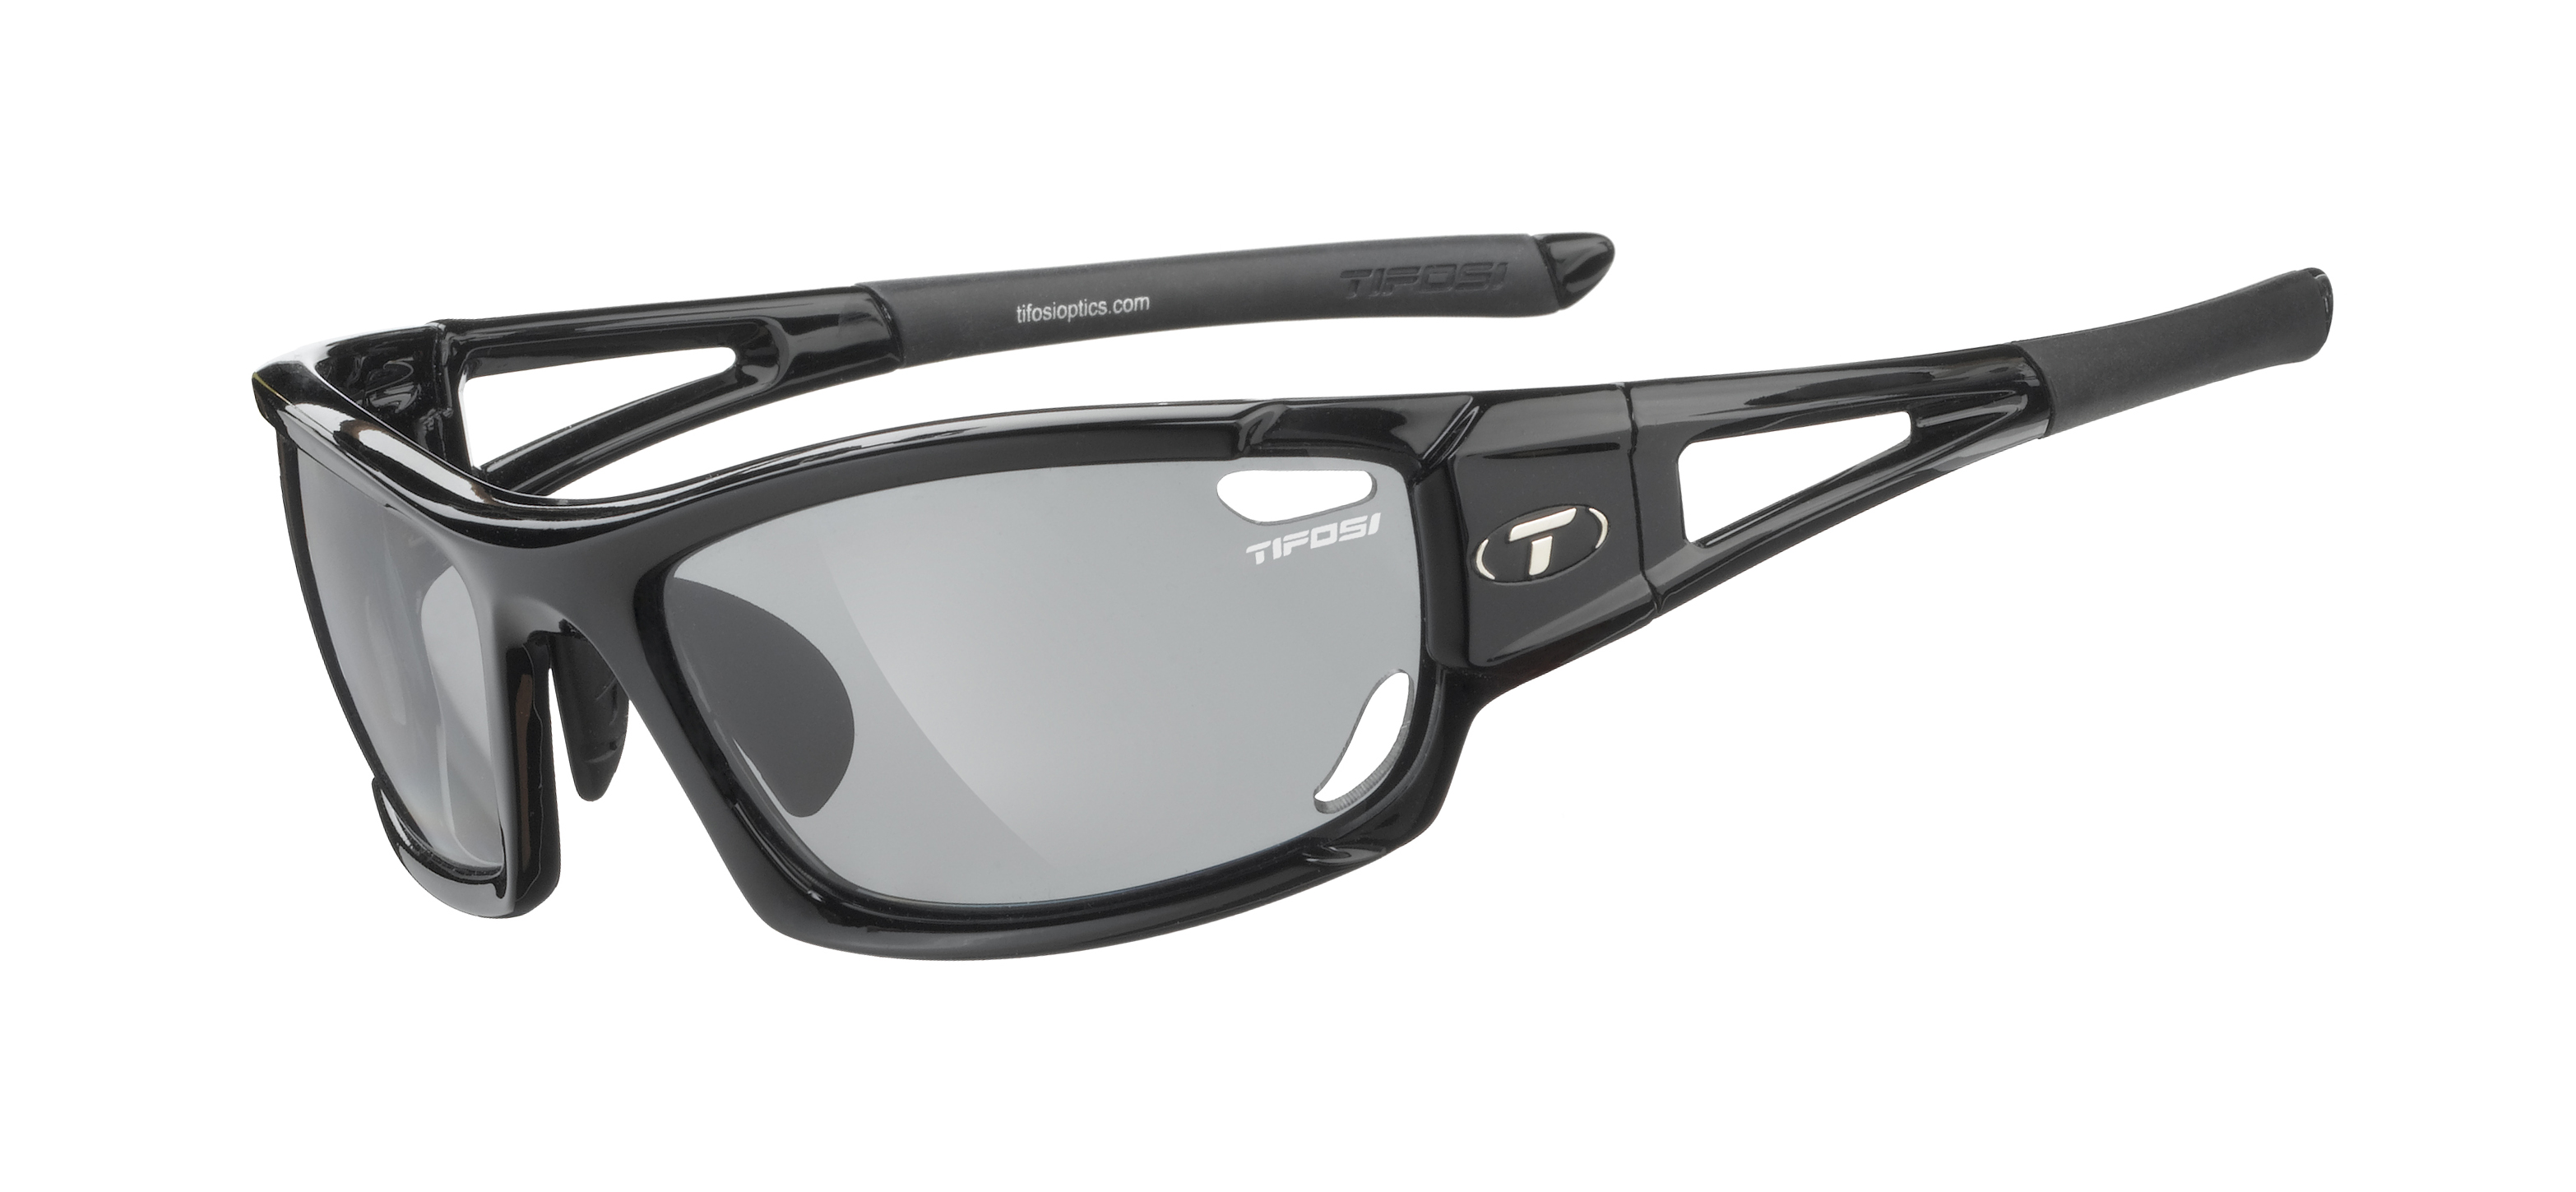 Tifosi Dolomite 2.0 Gloss Black Polarized Fotot